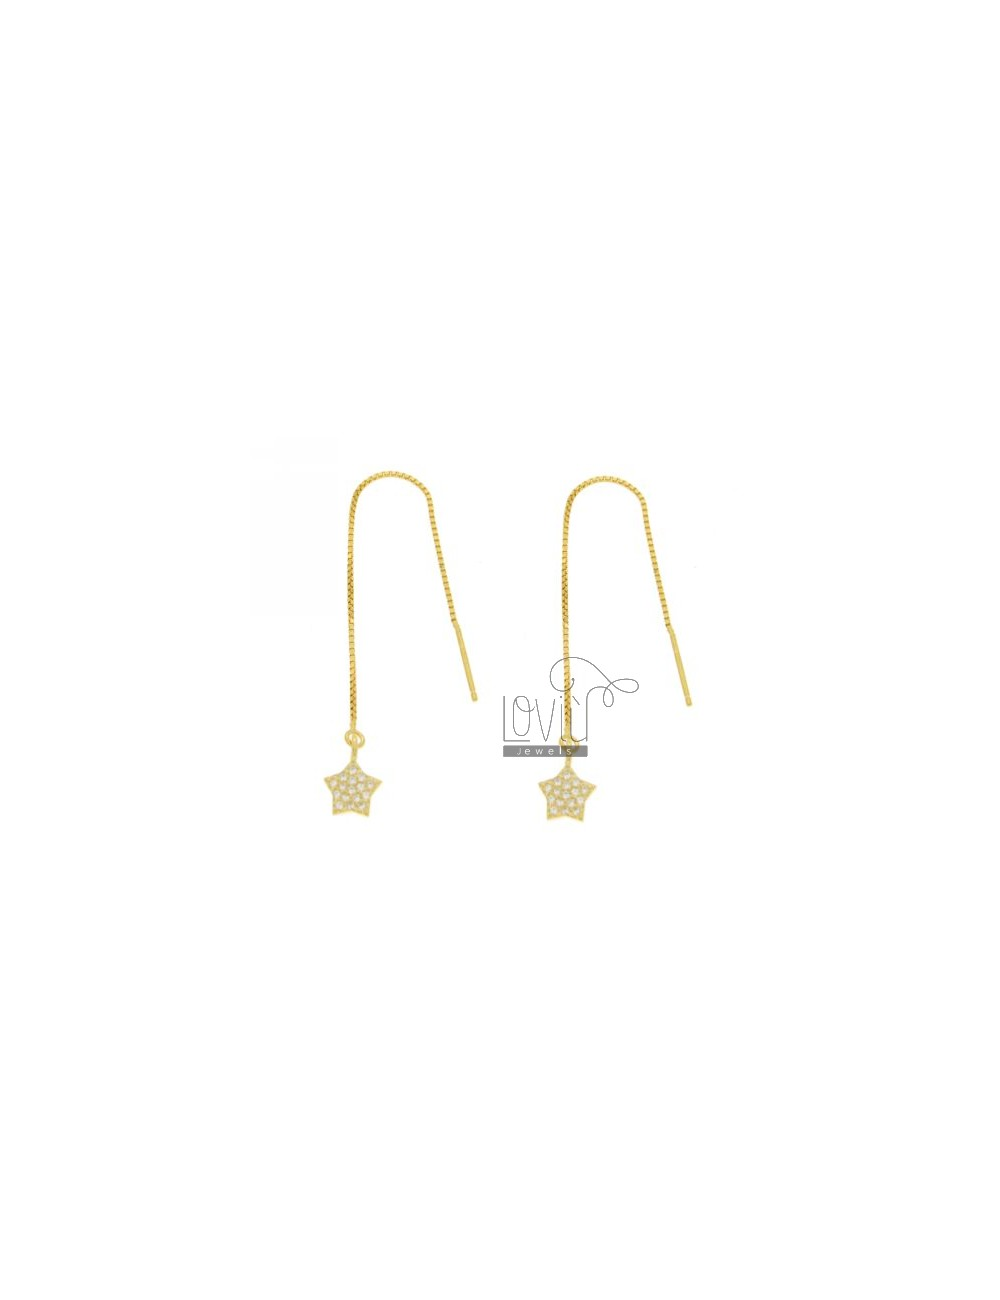 UP AND DOWN WITH EARRINGS PAVE STAR &39OF ZIRCONIA IN GOLD PLATED AG TIT 925 ‰